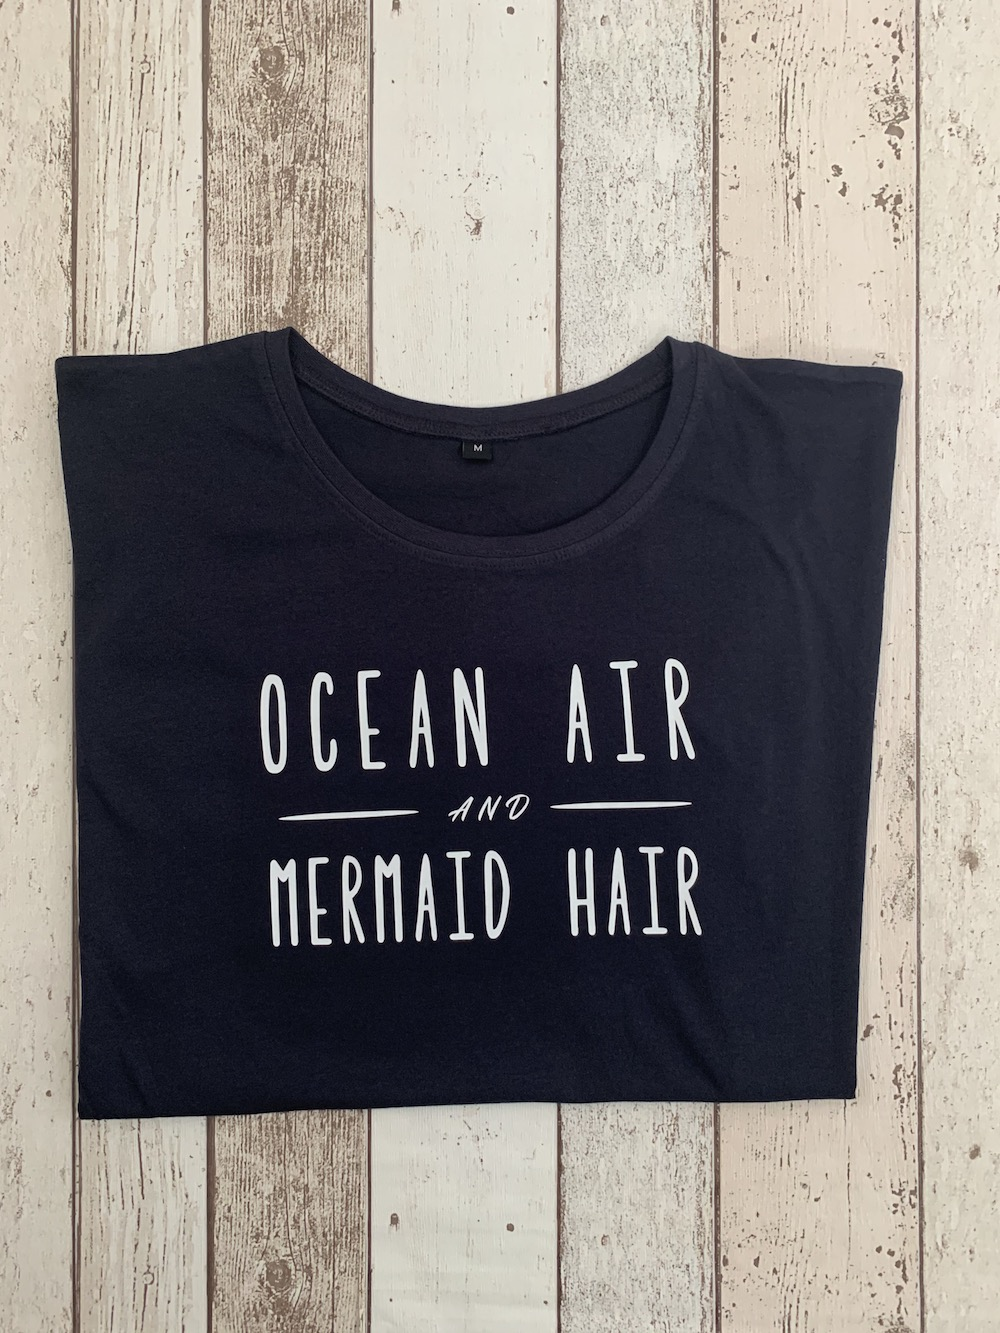 Ocean Air Tshirt – Navy And White